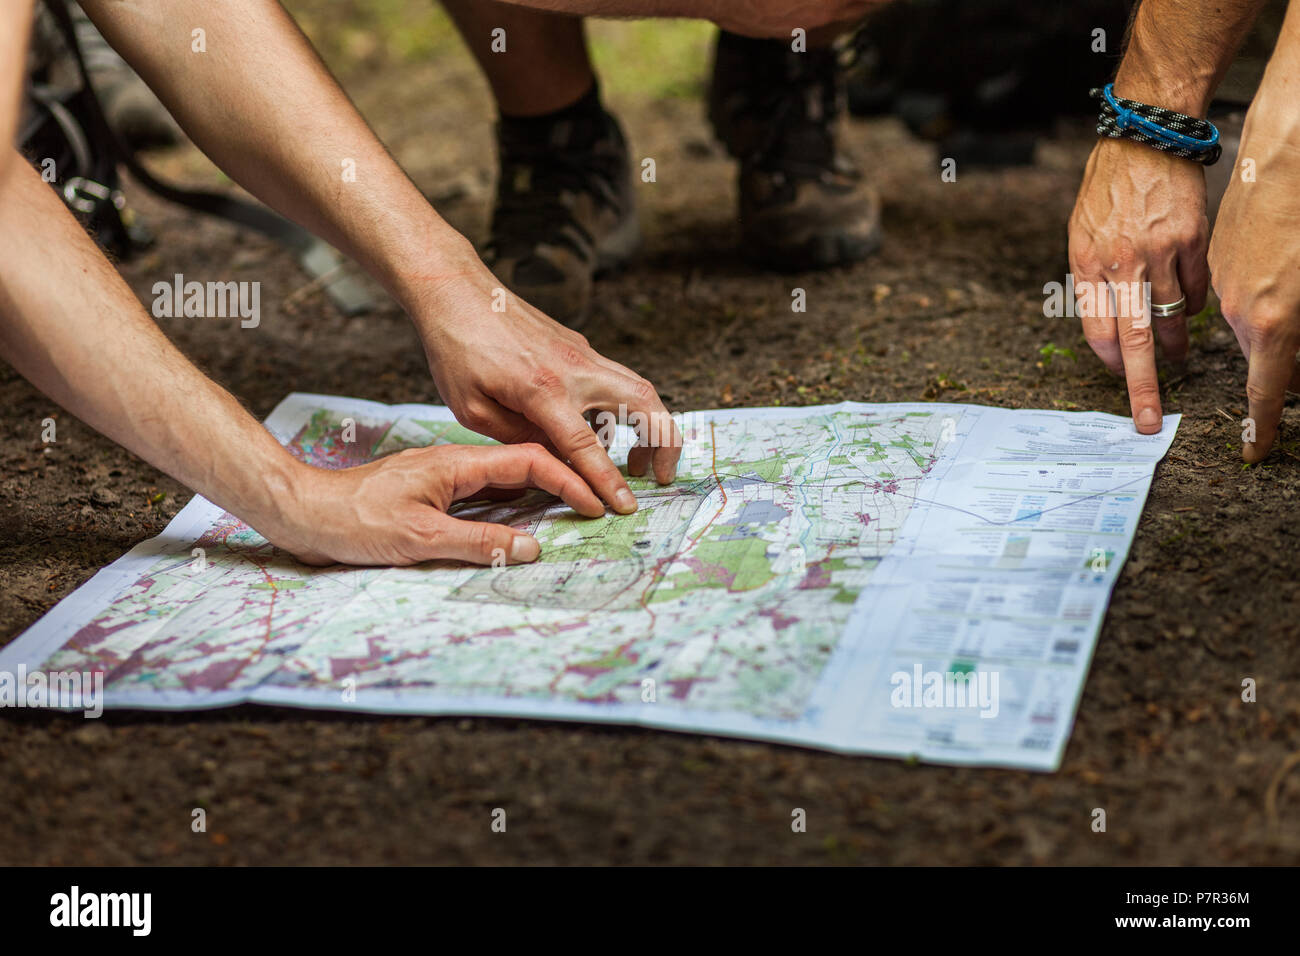 A group of hikers uses map and compass to navigate through the forest - Stock Image